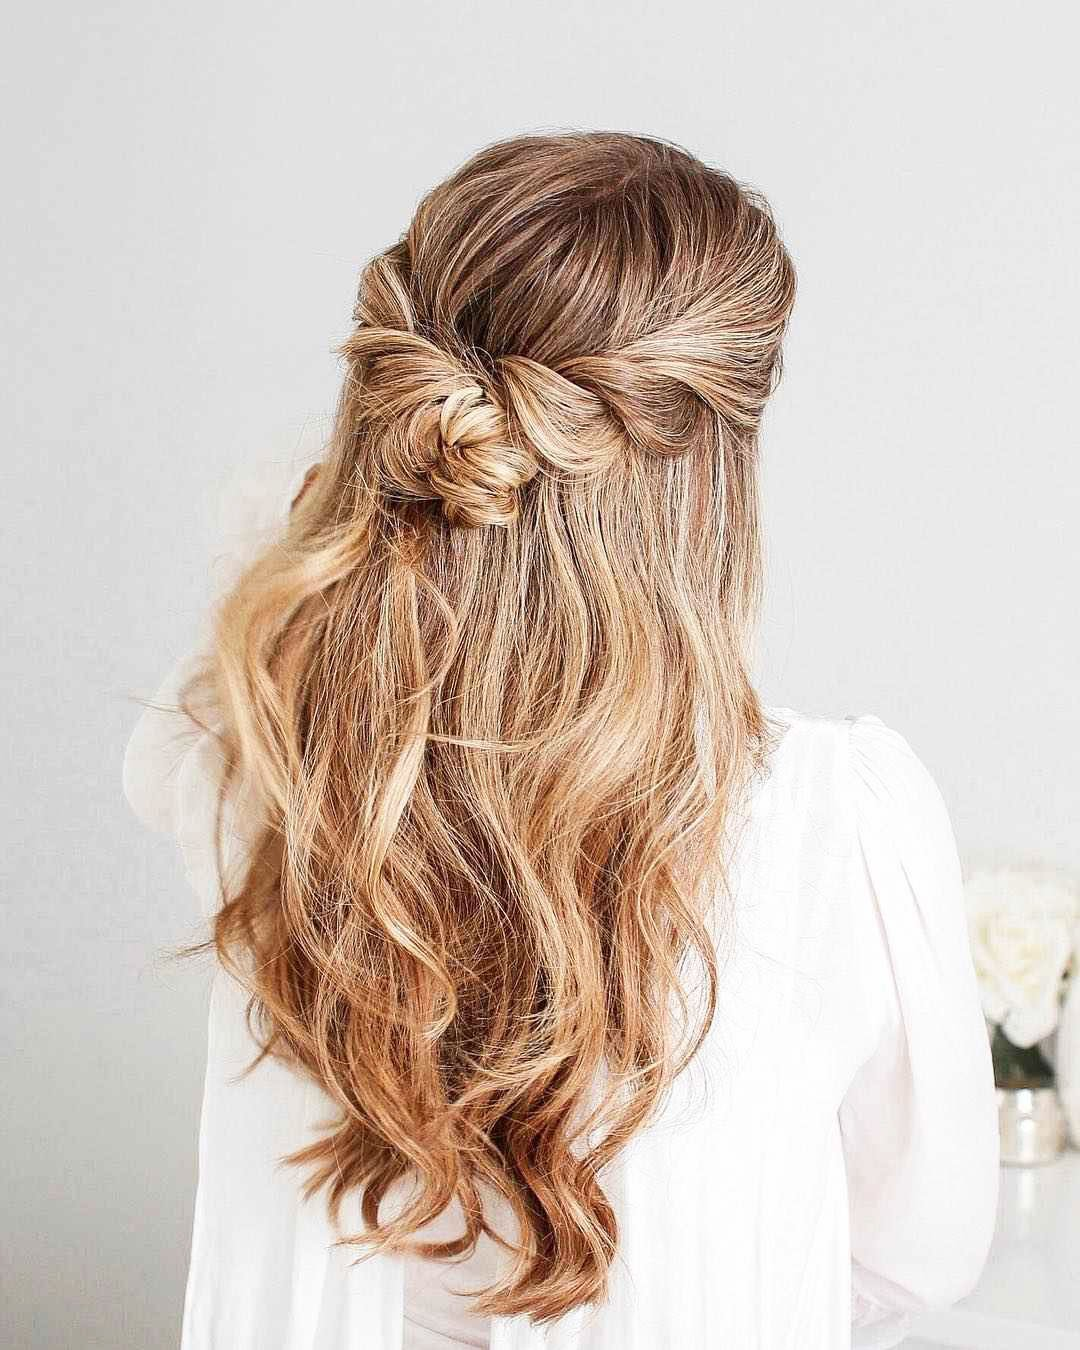 Hairstyles For Prom On Long Hair 2019-2020: Photo 11